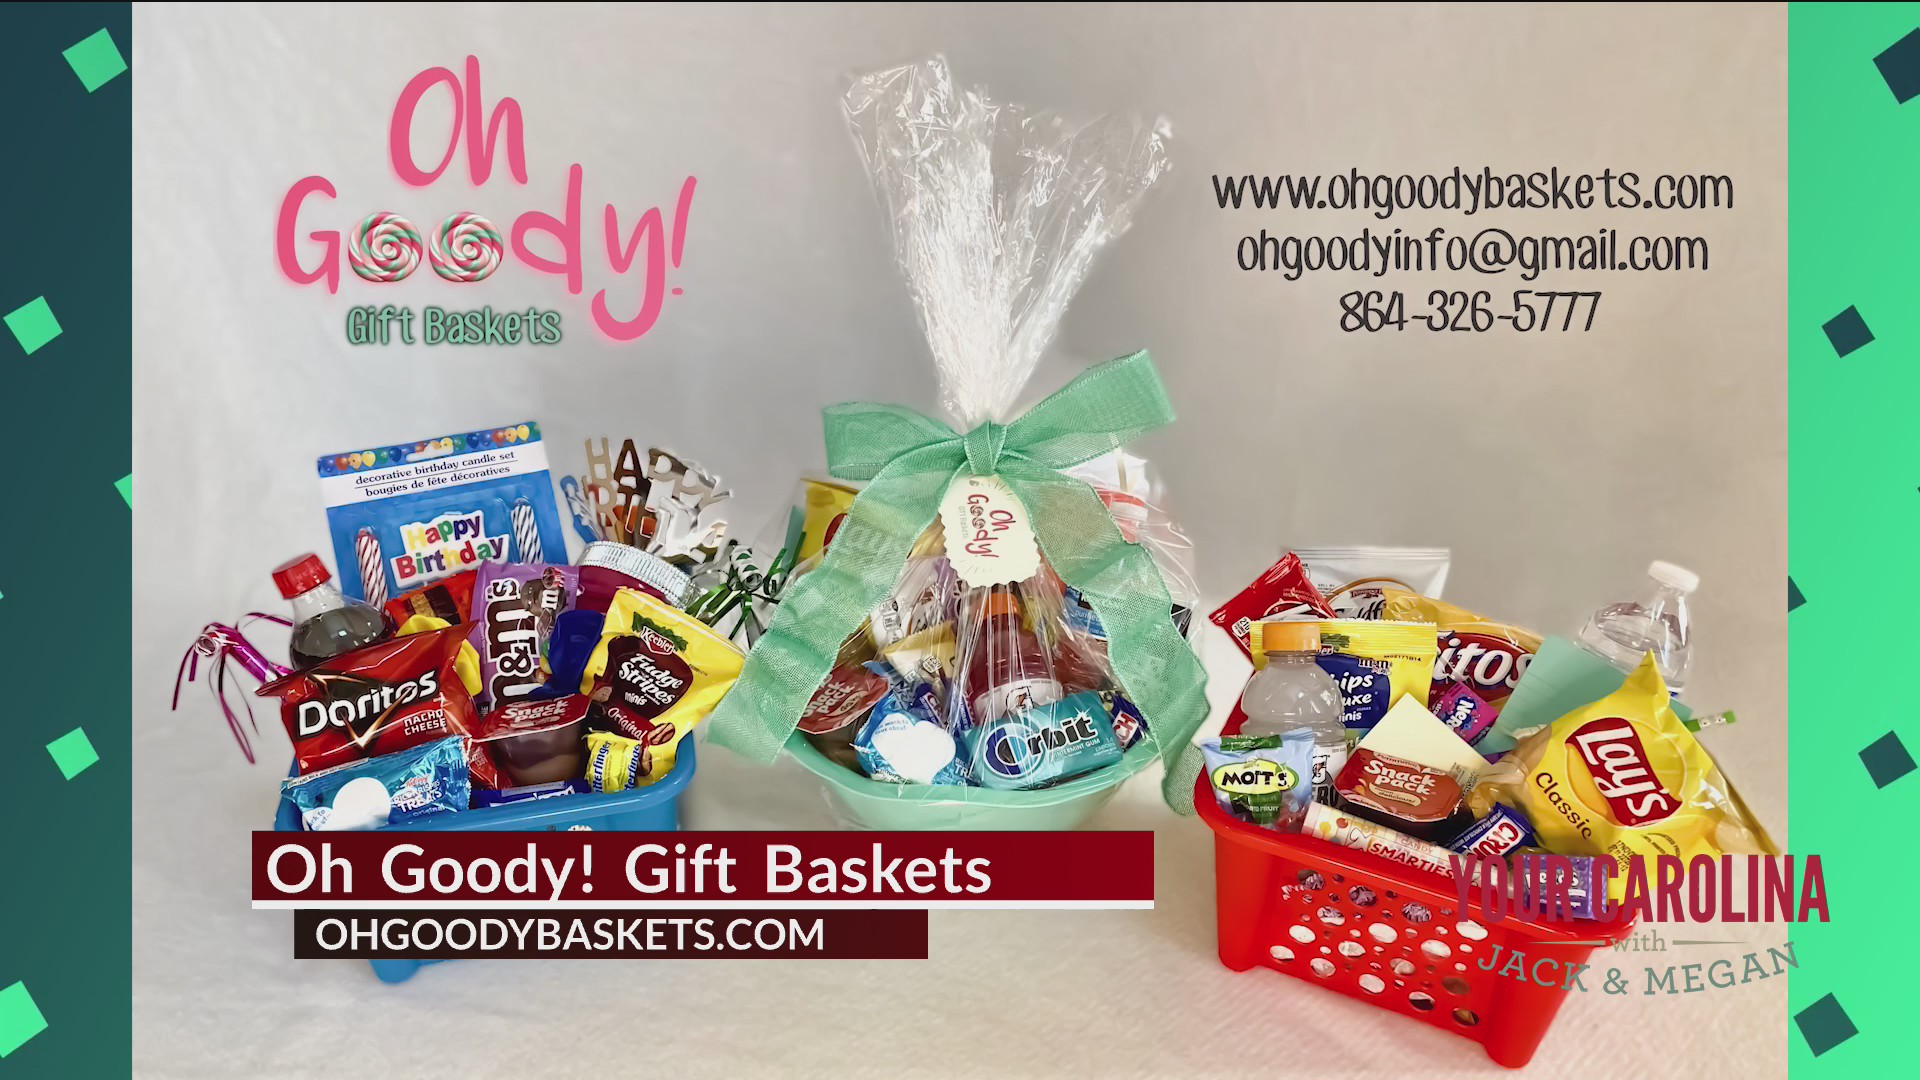 Oh Goody! Gift Baskets